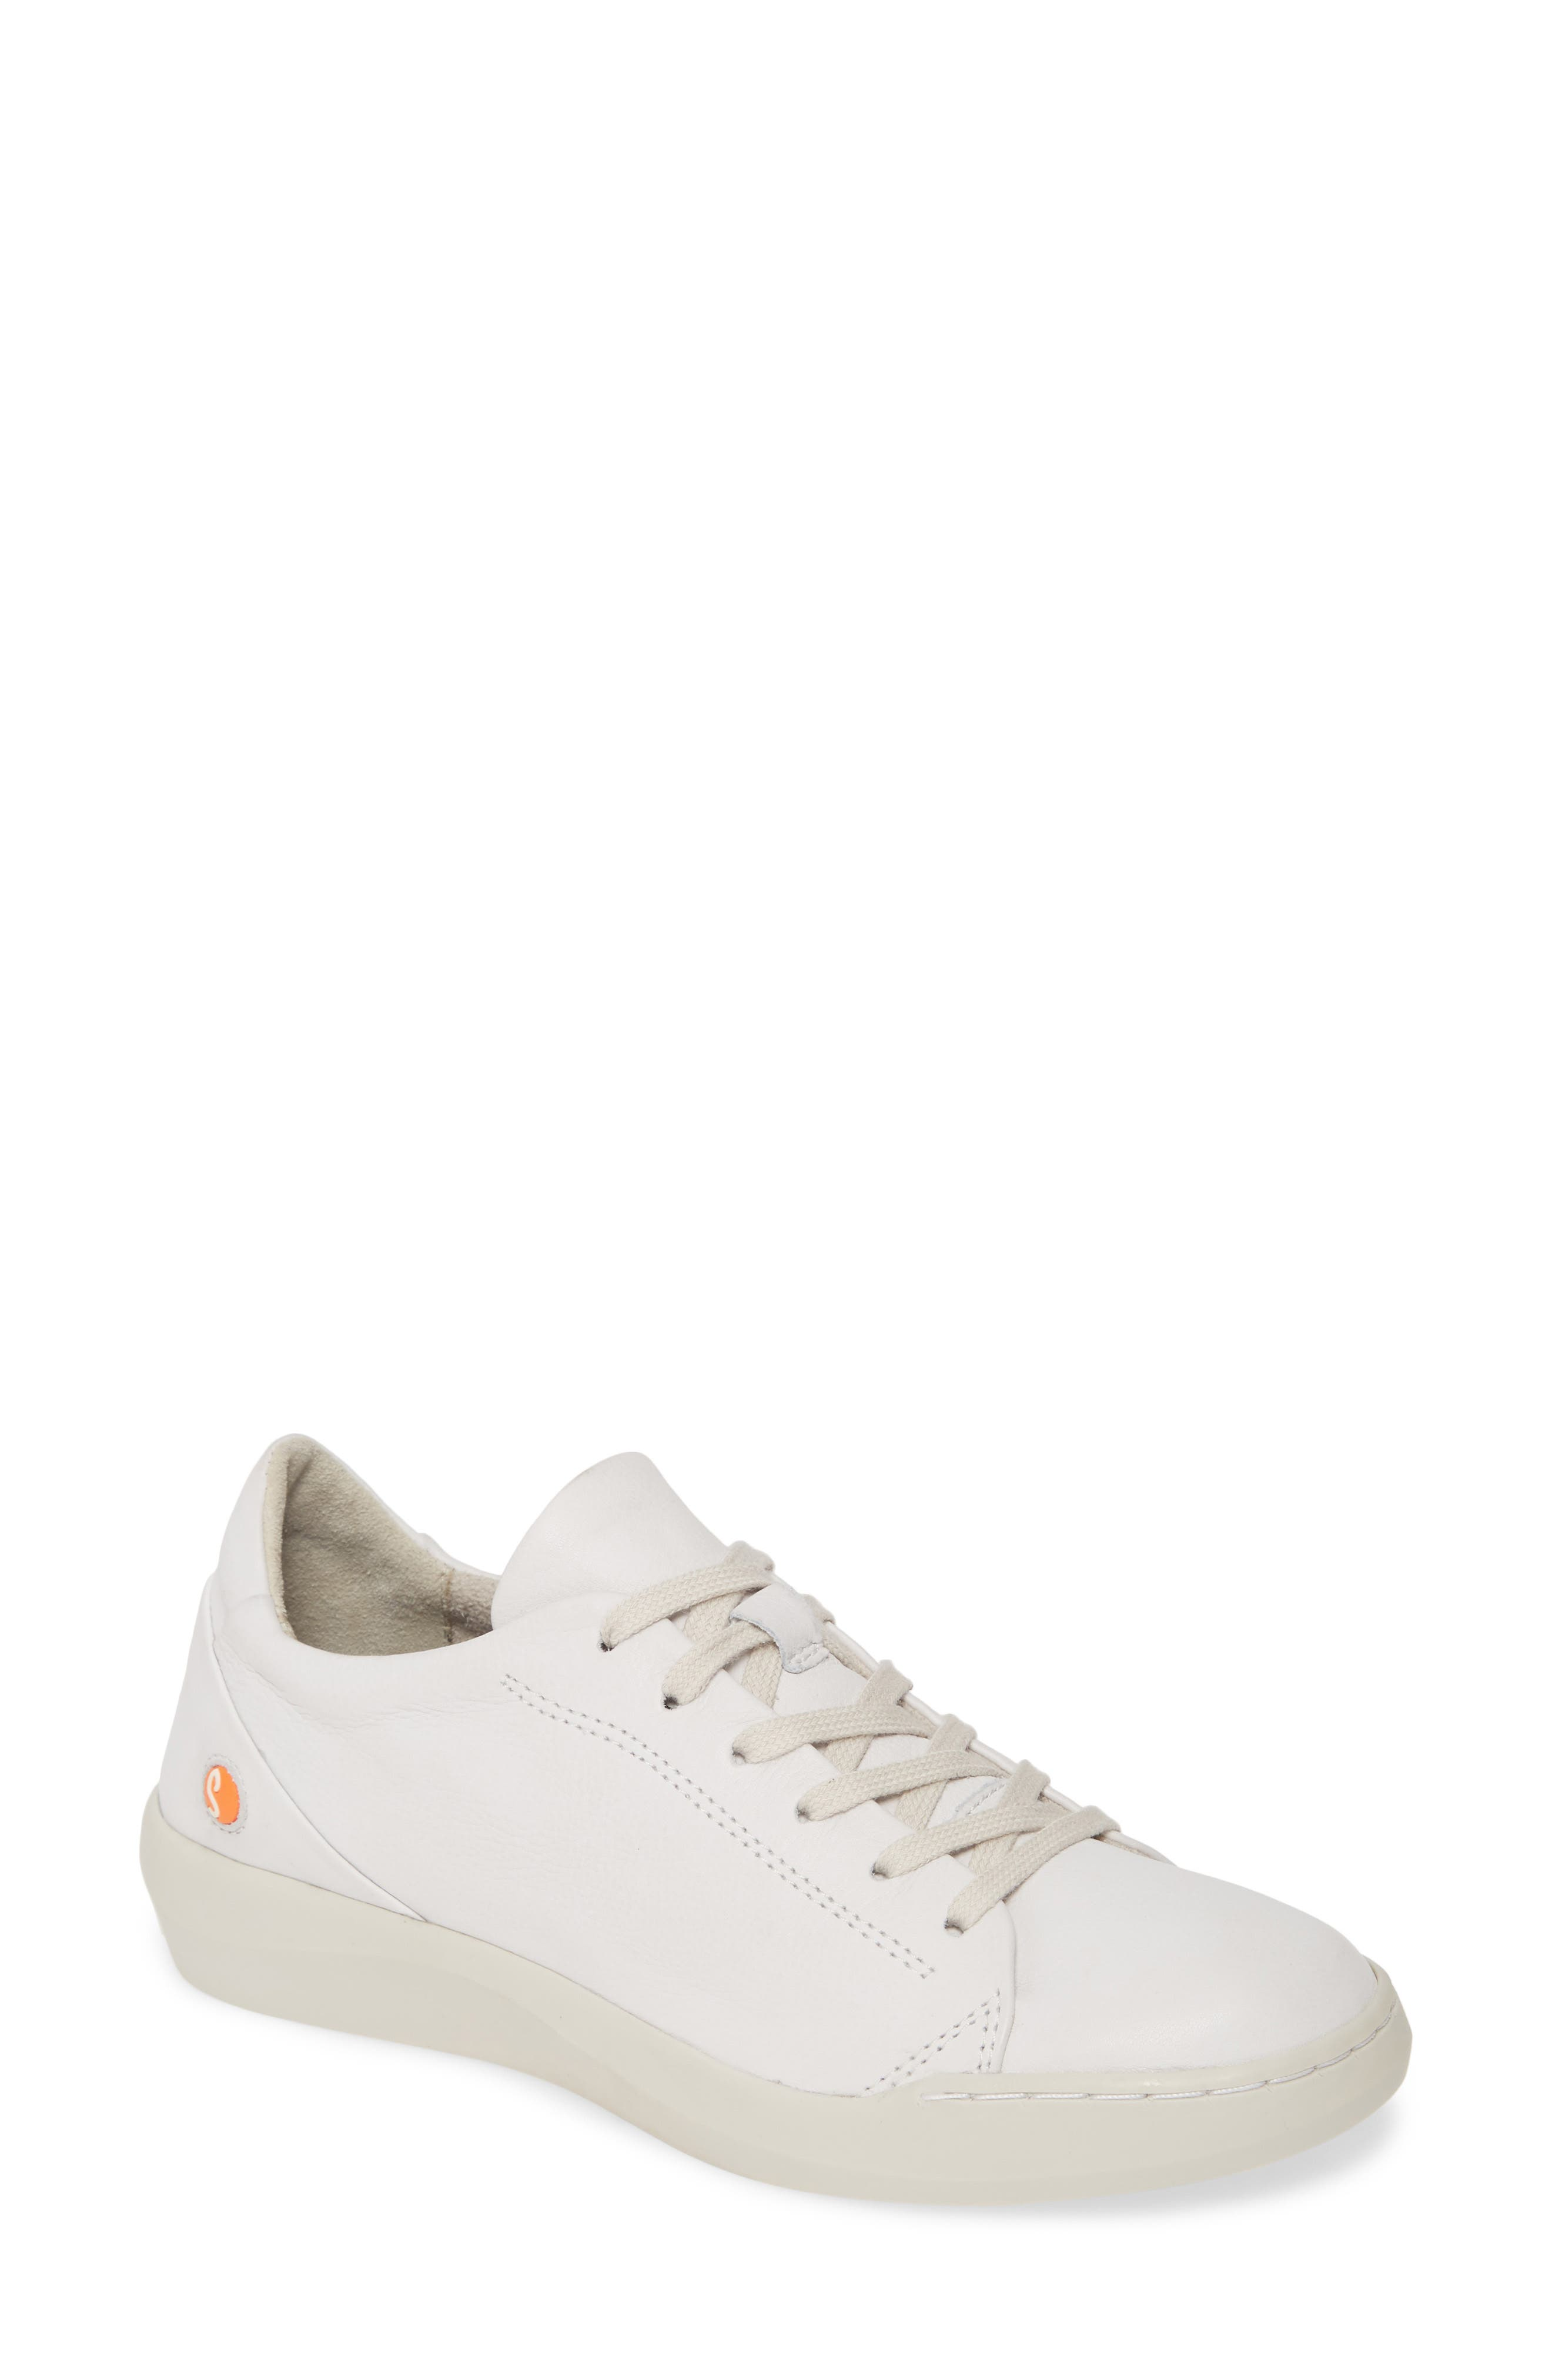 Softinos By Fly London Bauk Sneaker - White